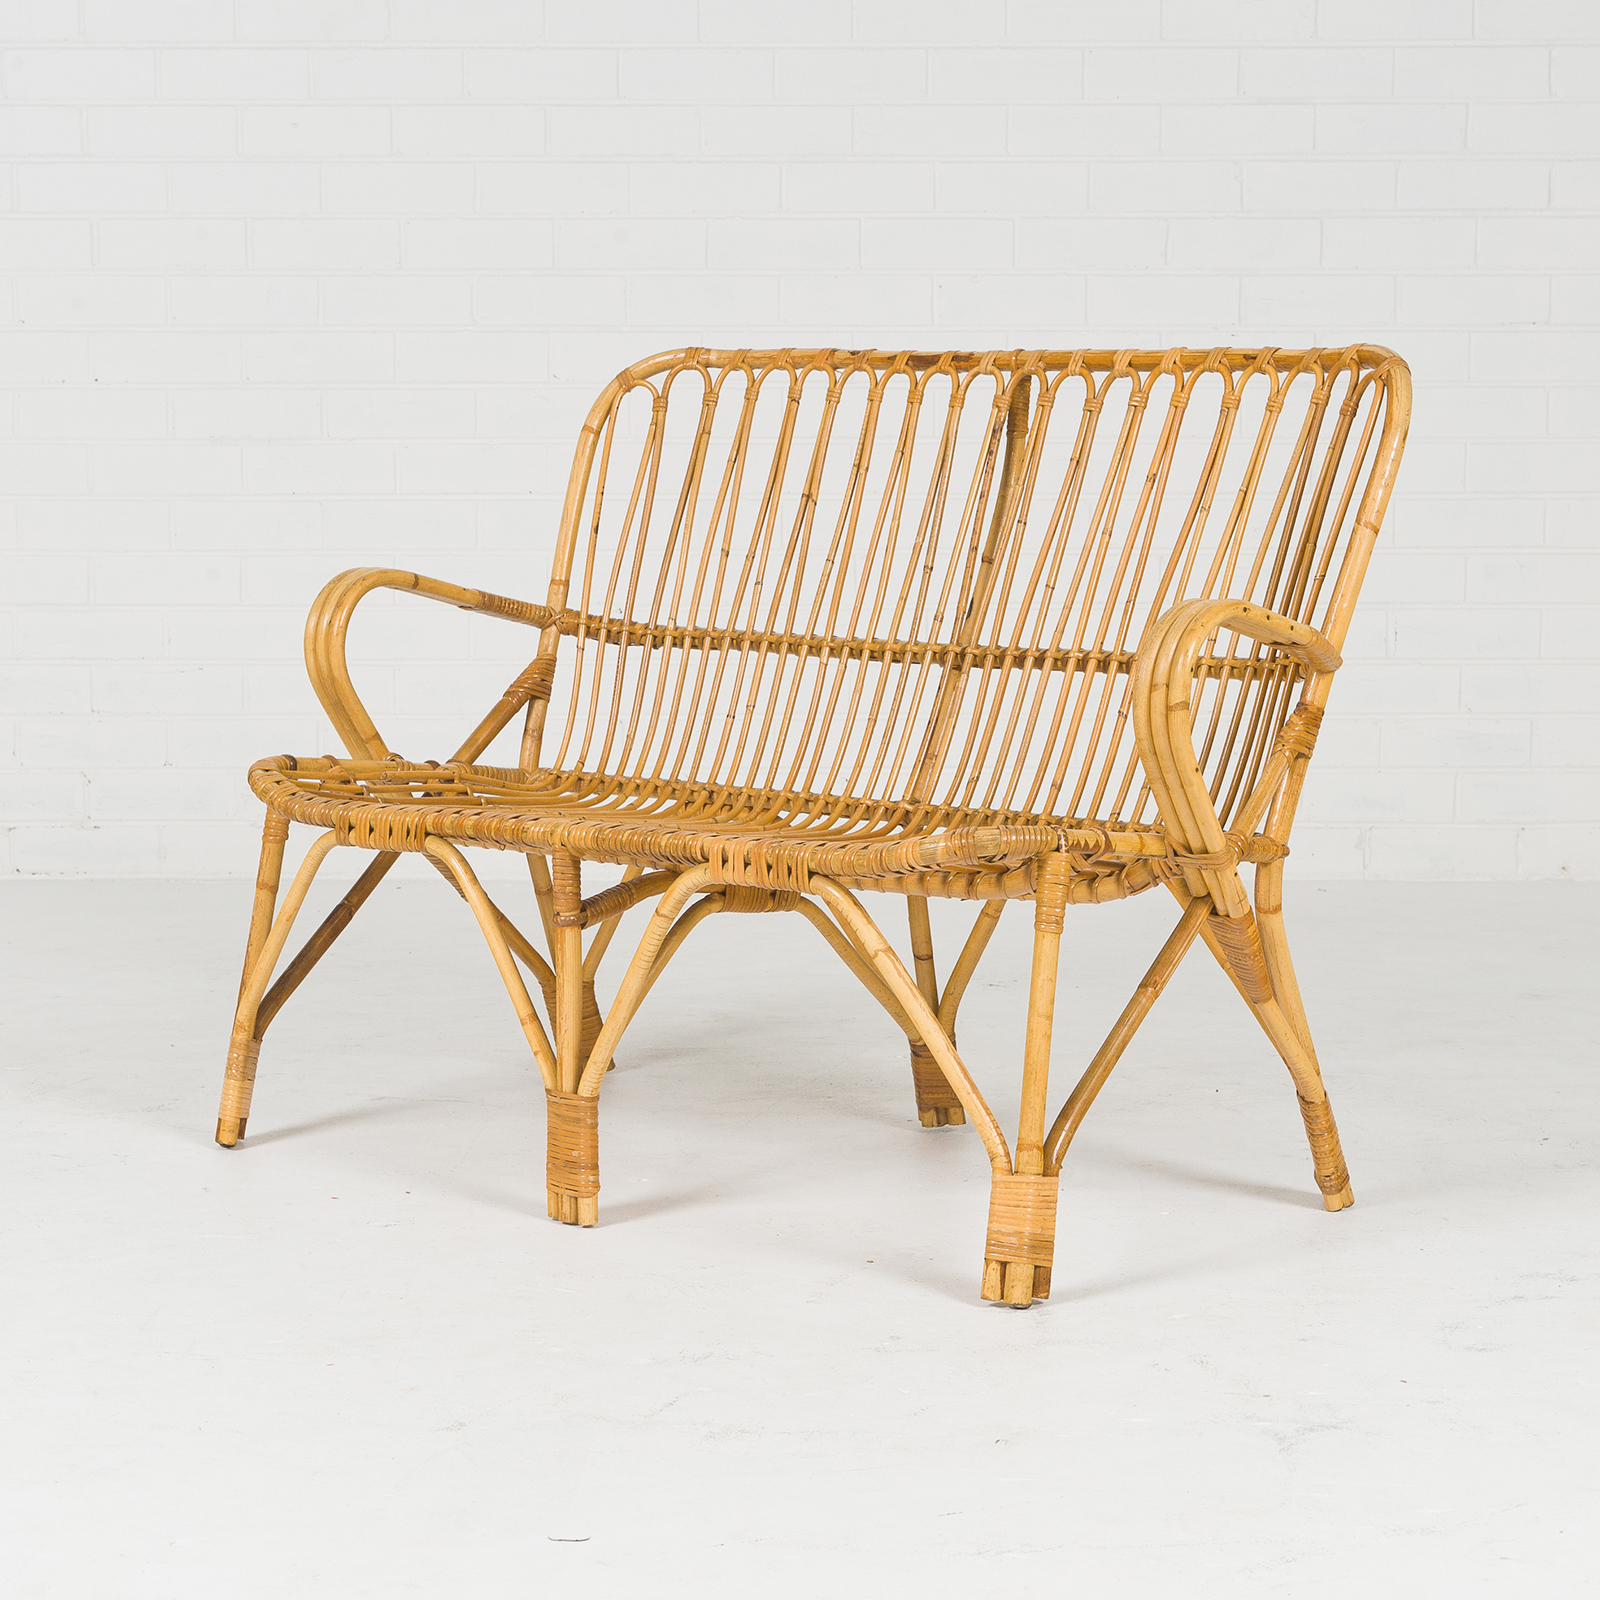 2 Seat Wicker Sofa In Bamboo With Coiled Socks 1960s Denmark 02